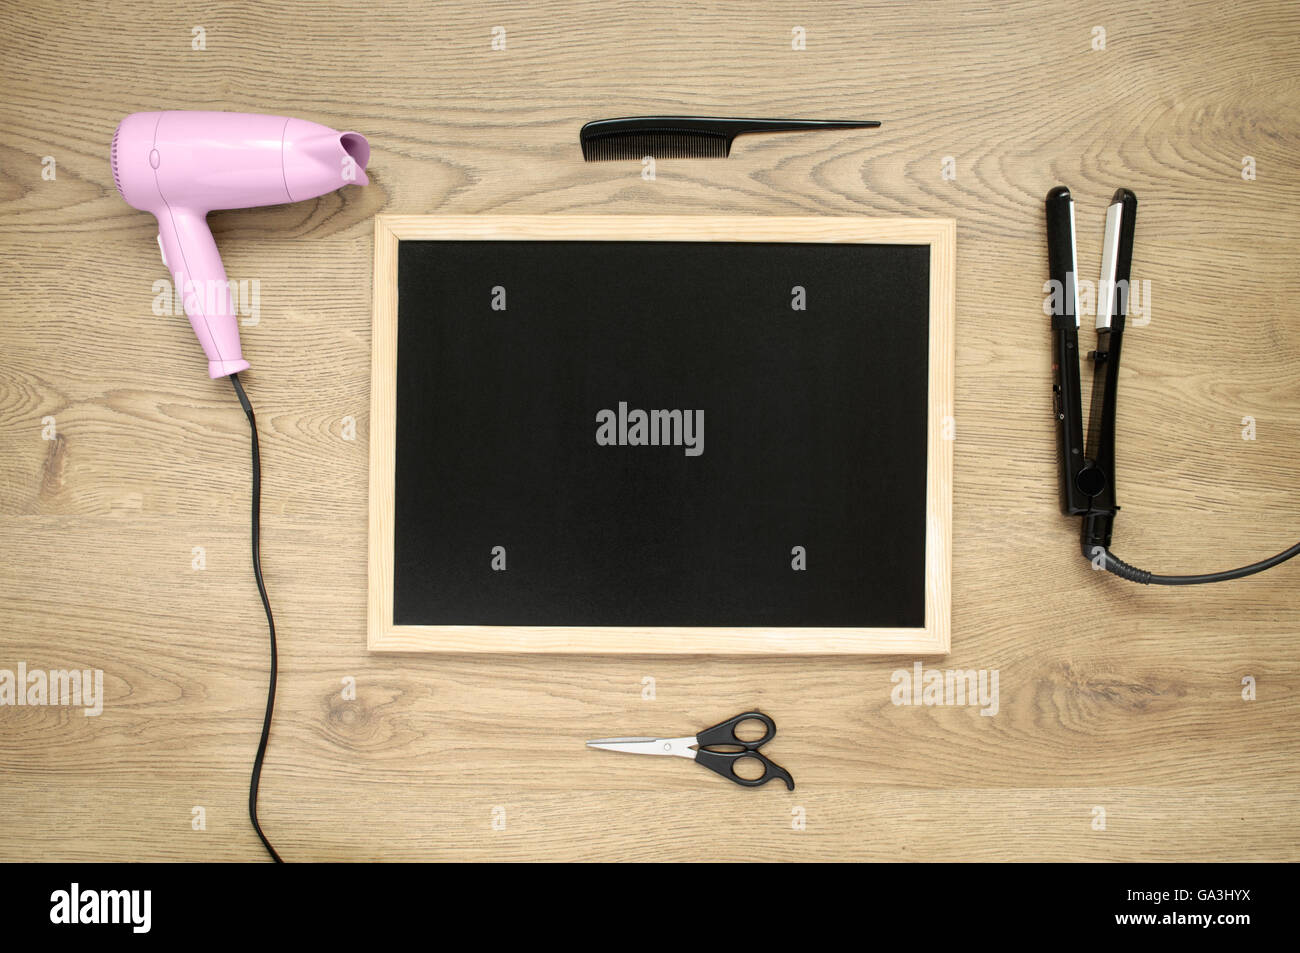 Hair dryer, iron, comb, scissors and blackboard on wooden background - Stock Image